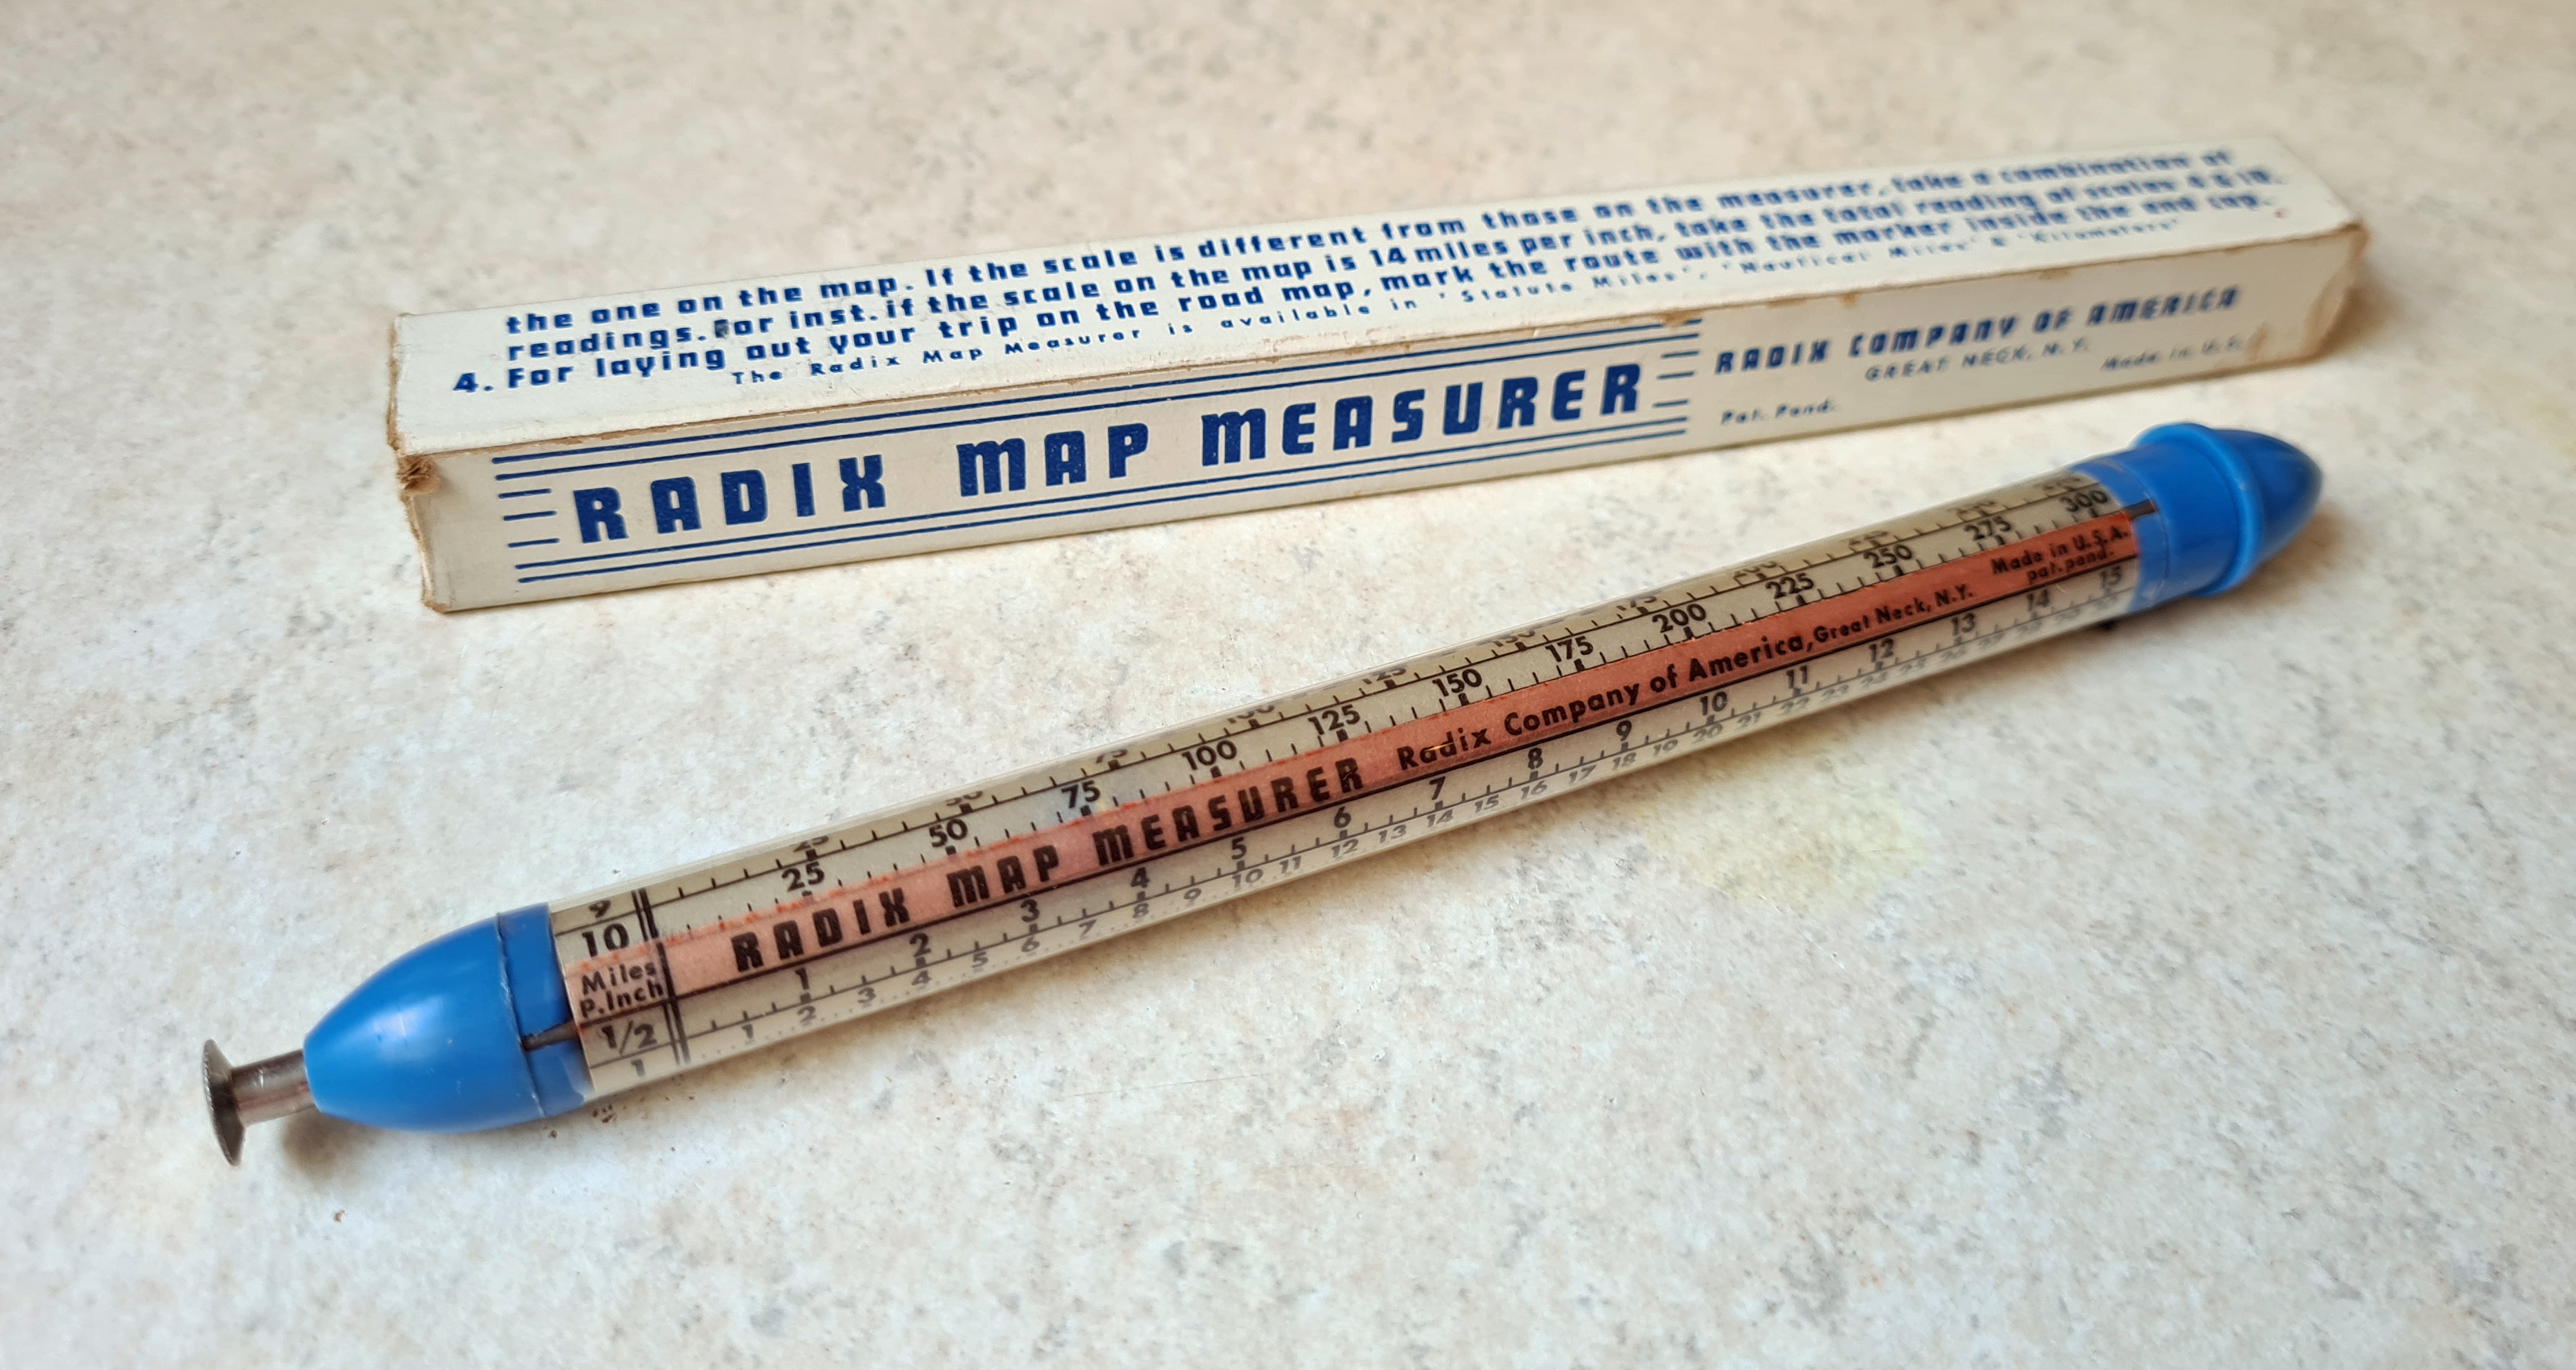 Radix Map Measurer and early packaging